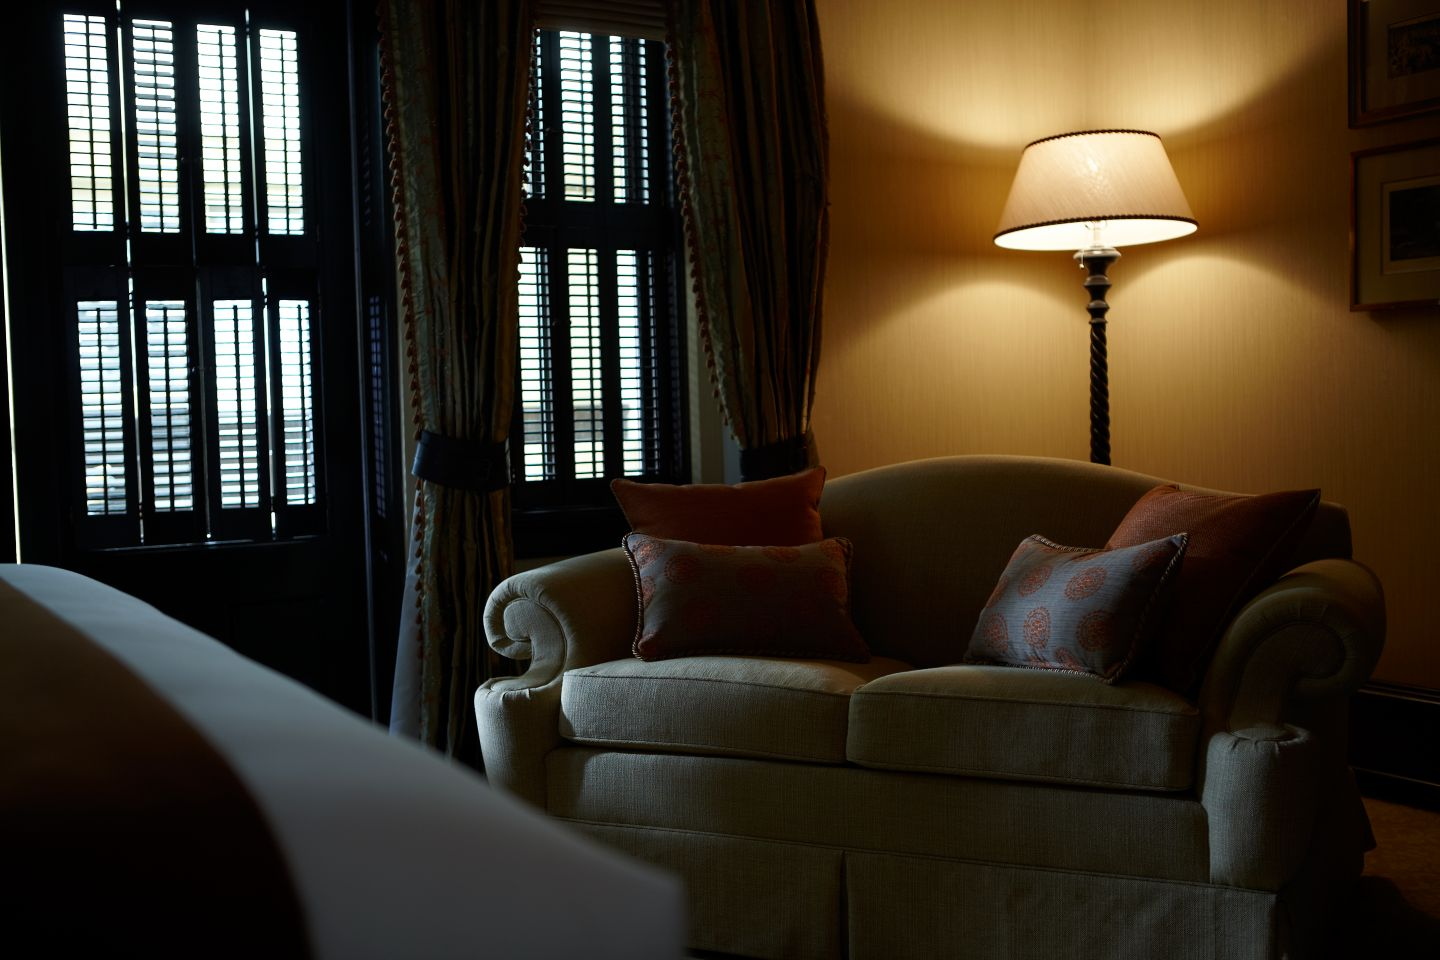 This is the Carriage House Suite at the Carriage House